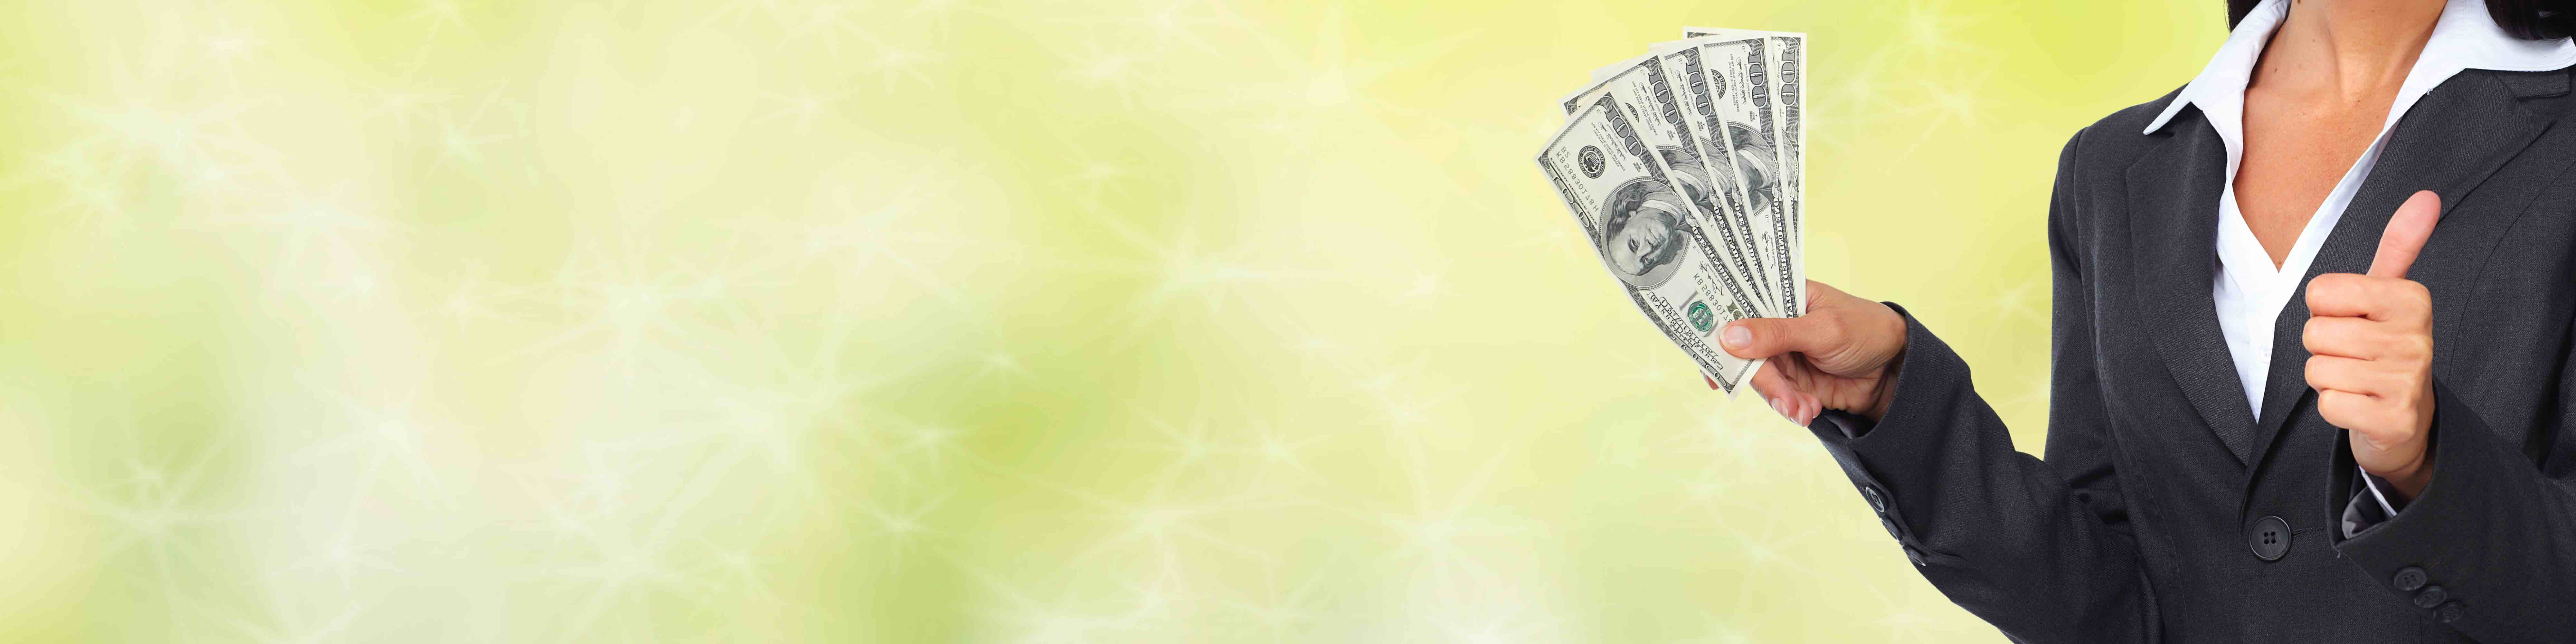 Introduction to Spousal Support (Alimony) in Arizona